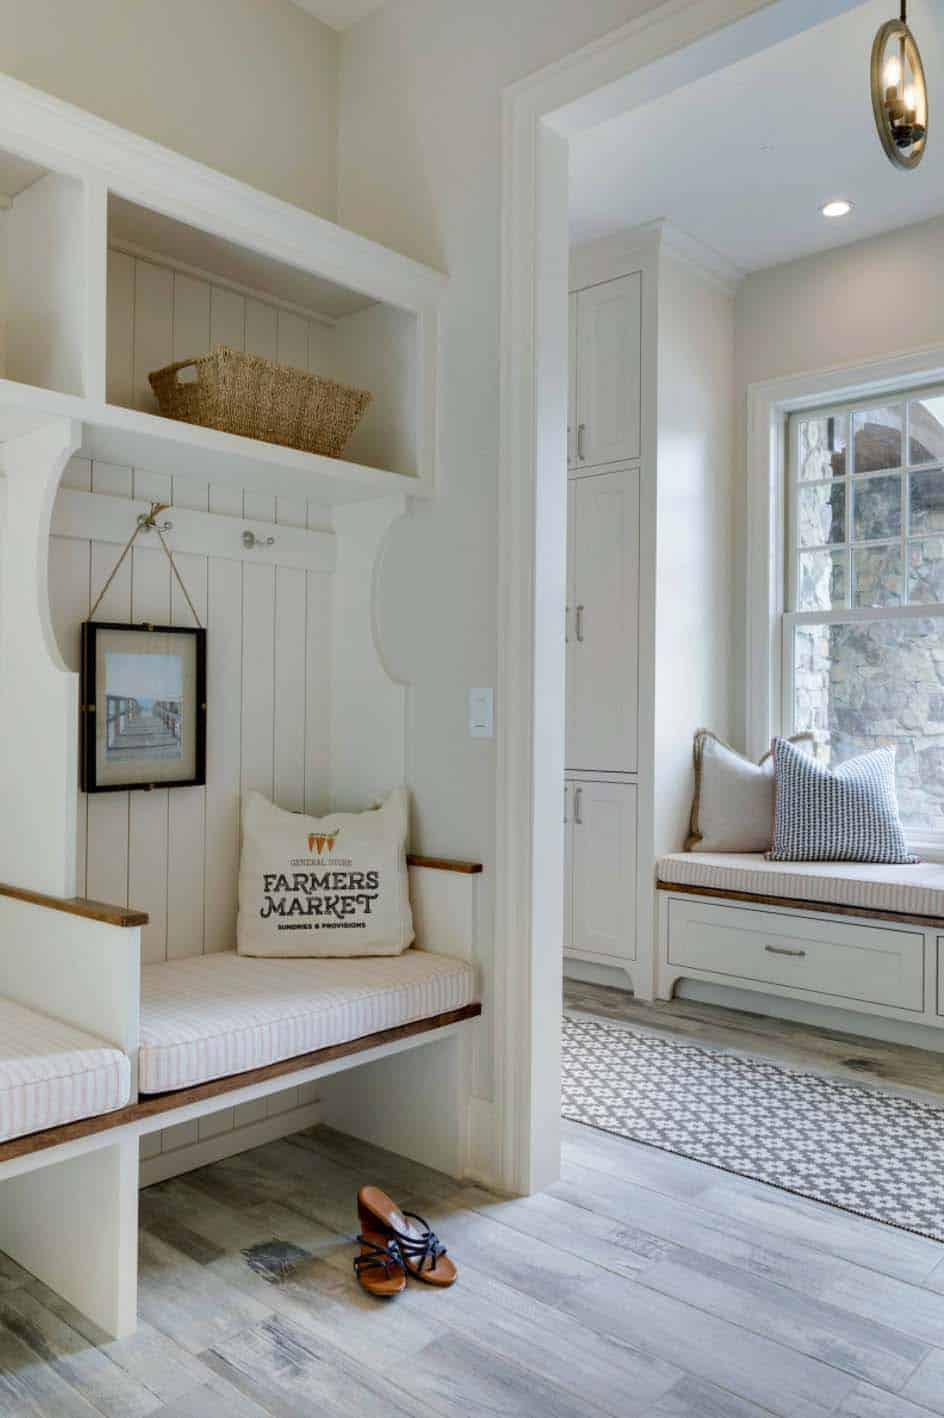 Cottage-Inspired Lake House-Charlie Co Design-13-1 Kindesign